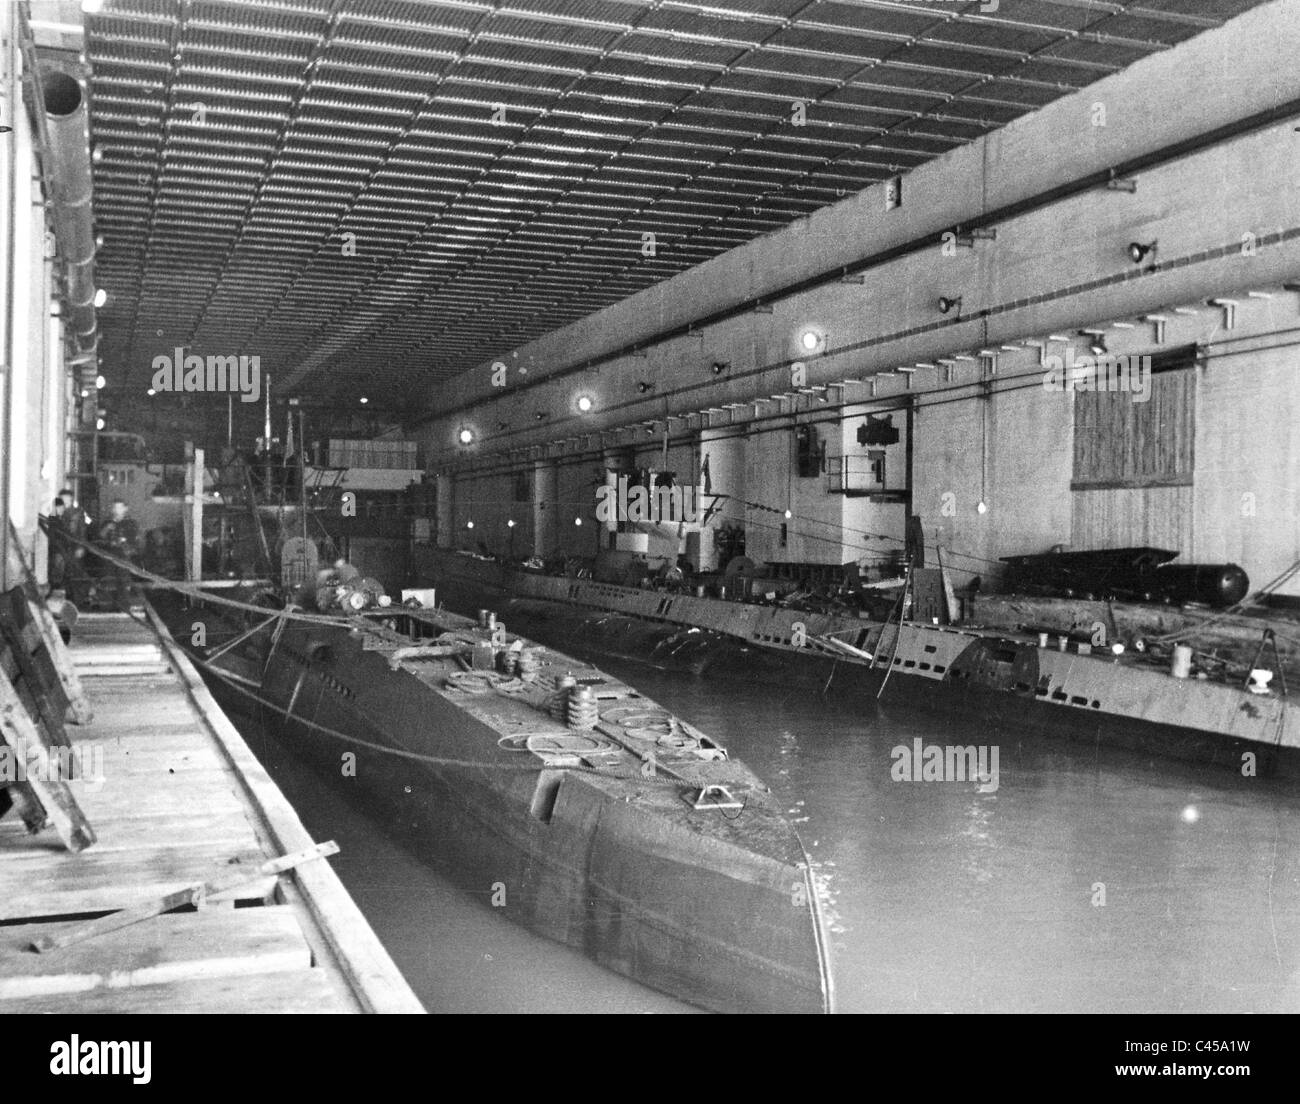 U-boat pictures from different archives - Axis History Forum